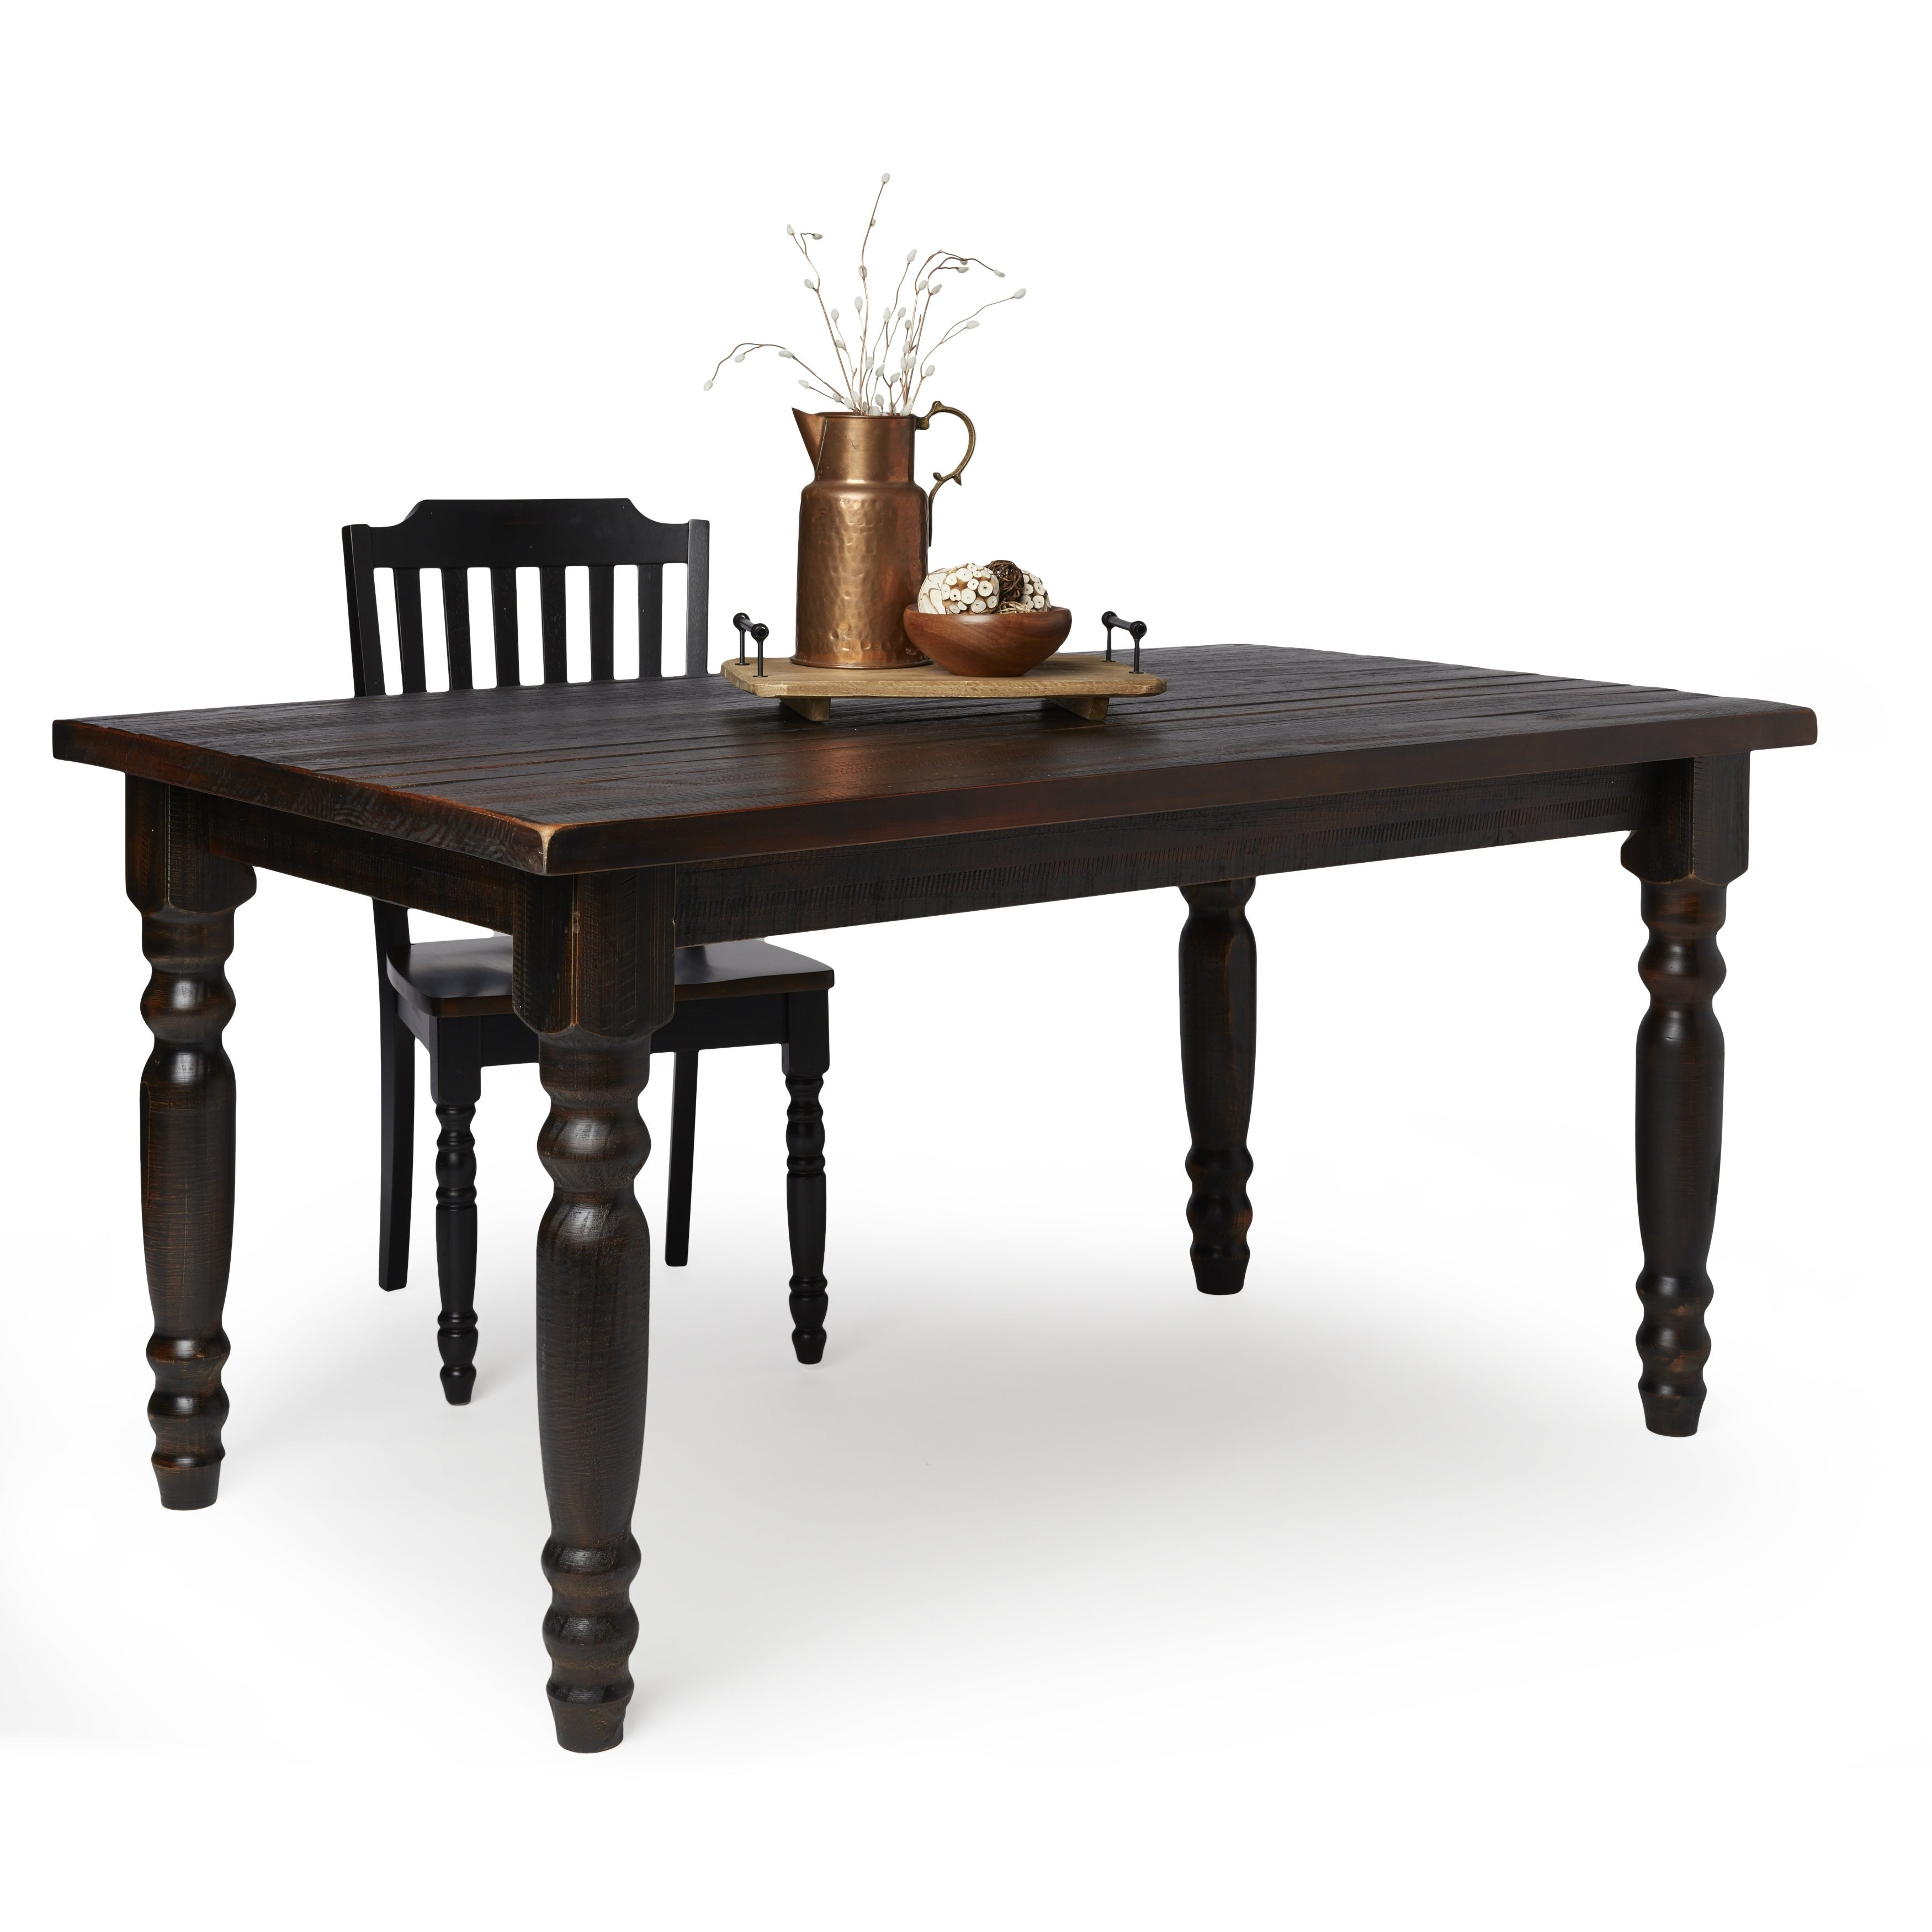 Shop Grain Wood Furniture Valerie 63 Inch Solid Wood Dining Table For Current Evellen 5 Piece Solid Wood Dining Sets (Set Of 5) (#10 of 20)